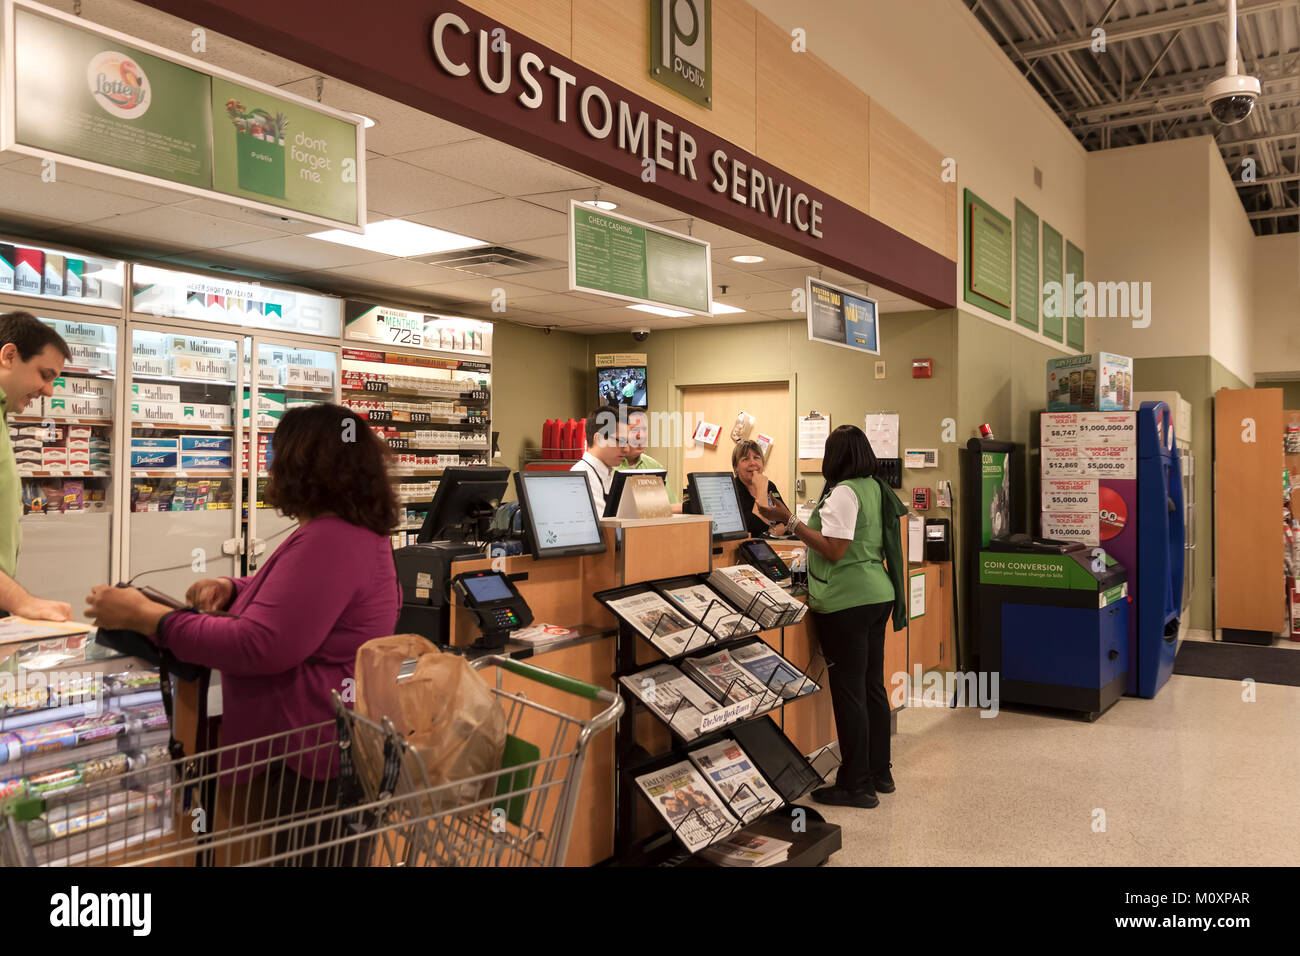 Customer Service desk that handles returns and complaints in a Publix Supermarket in Florida, United States of America. - Stock Image